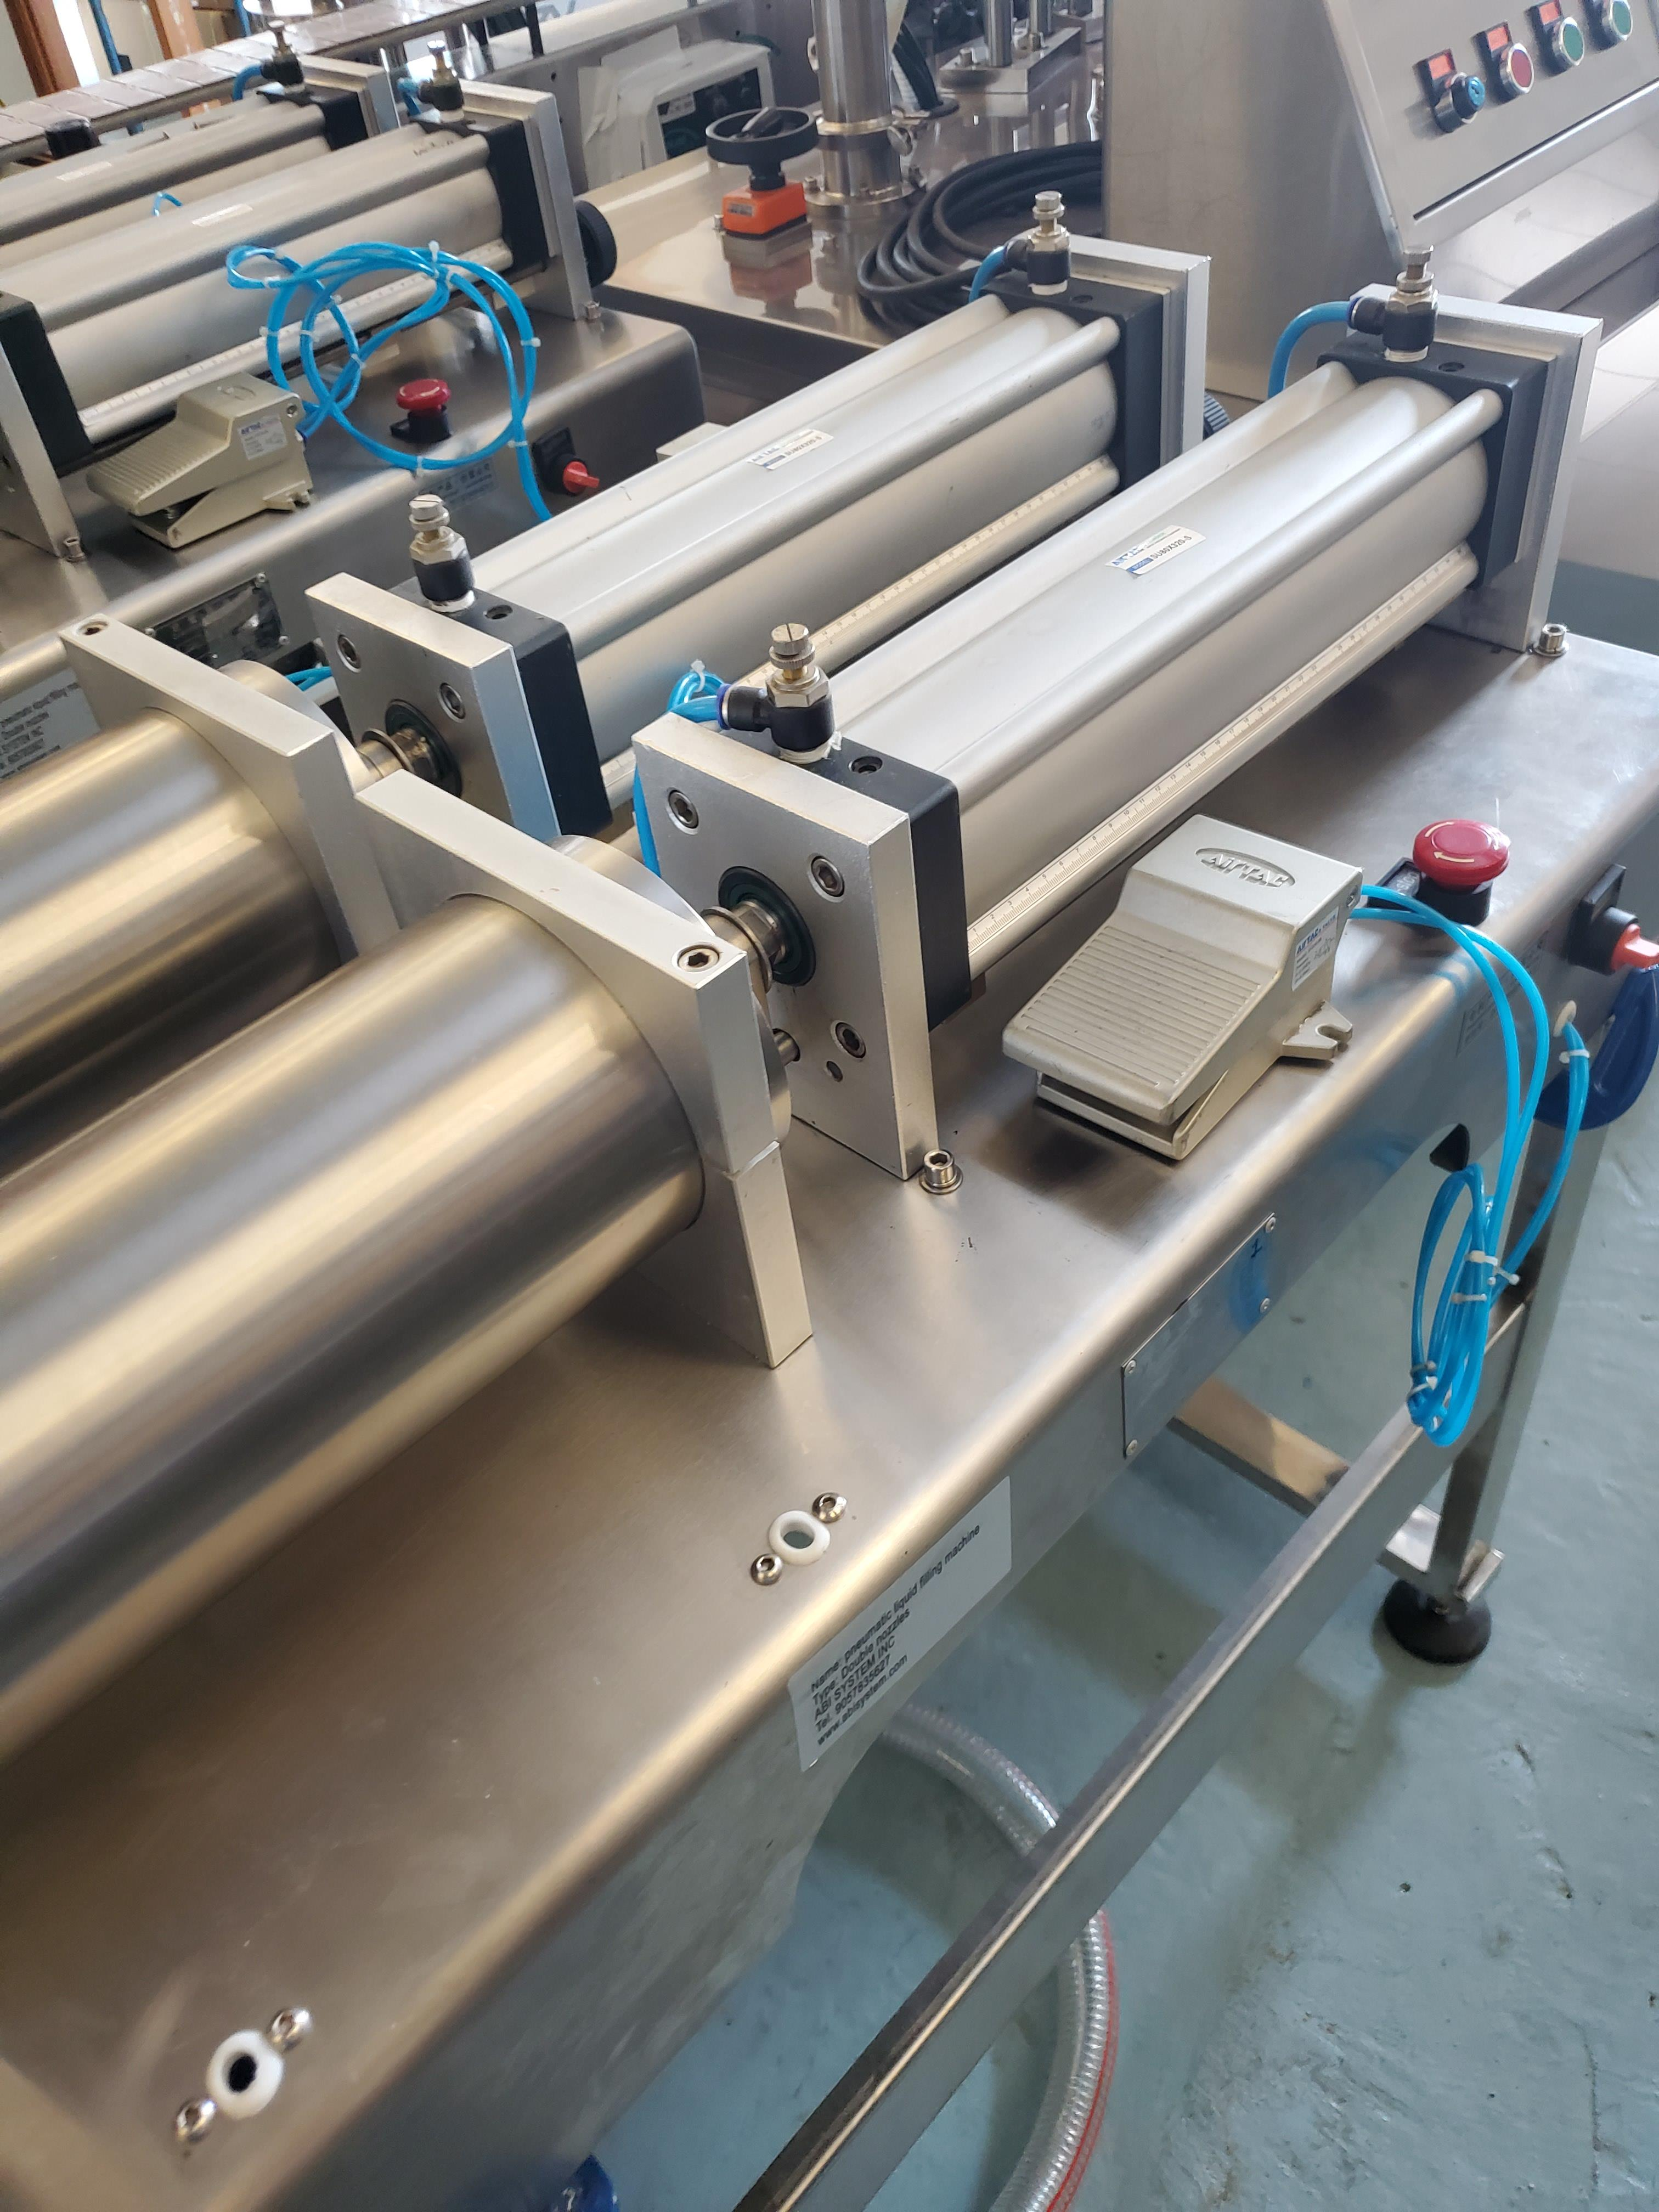 Double Piston Liquid Filler - All Stainless Steel Construction - Image 3 of 4